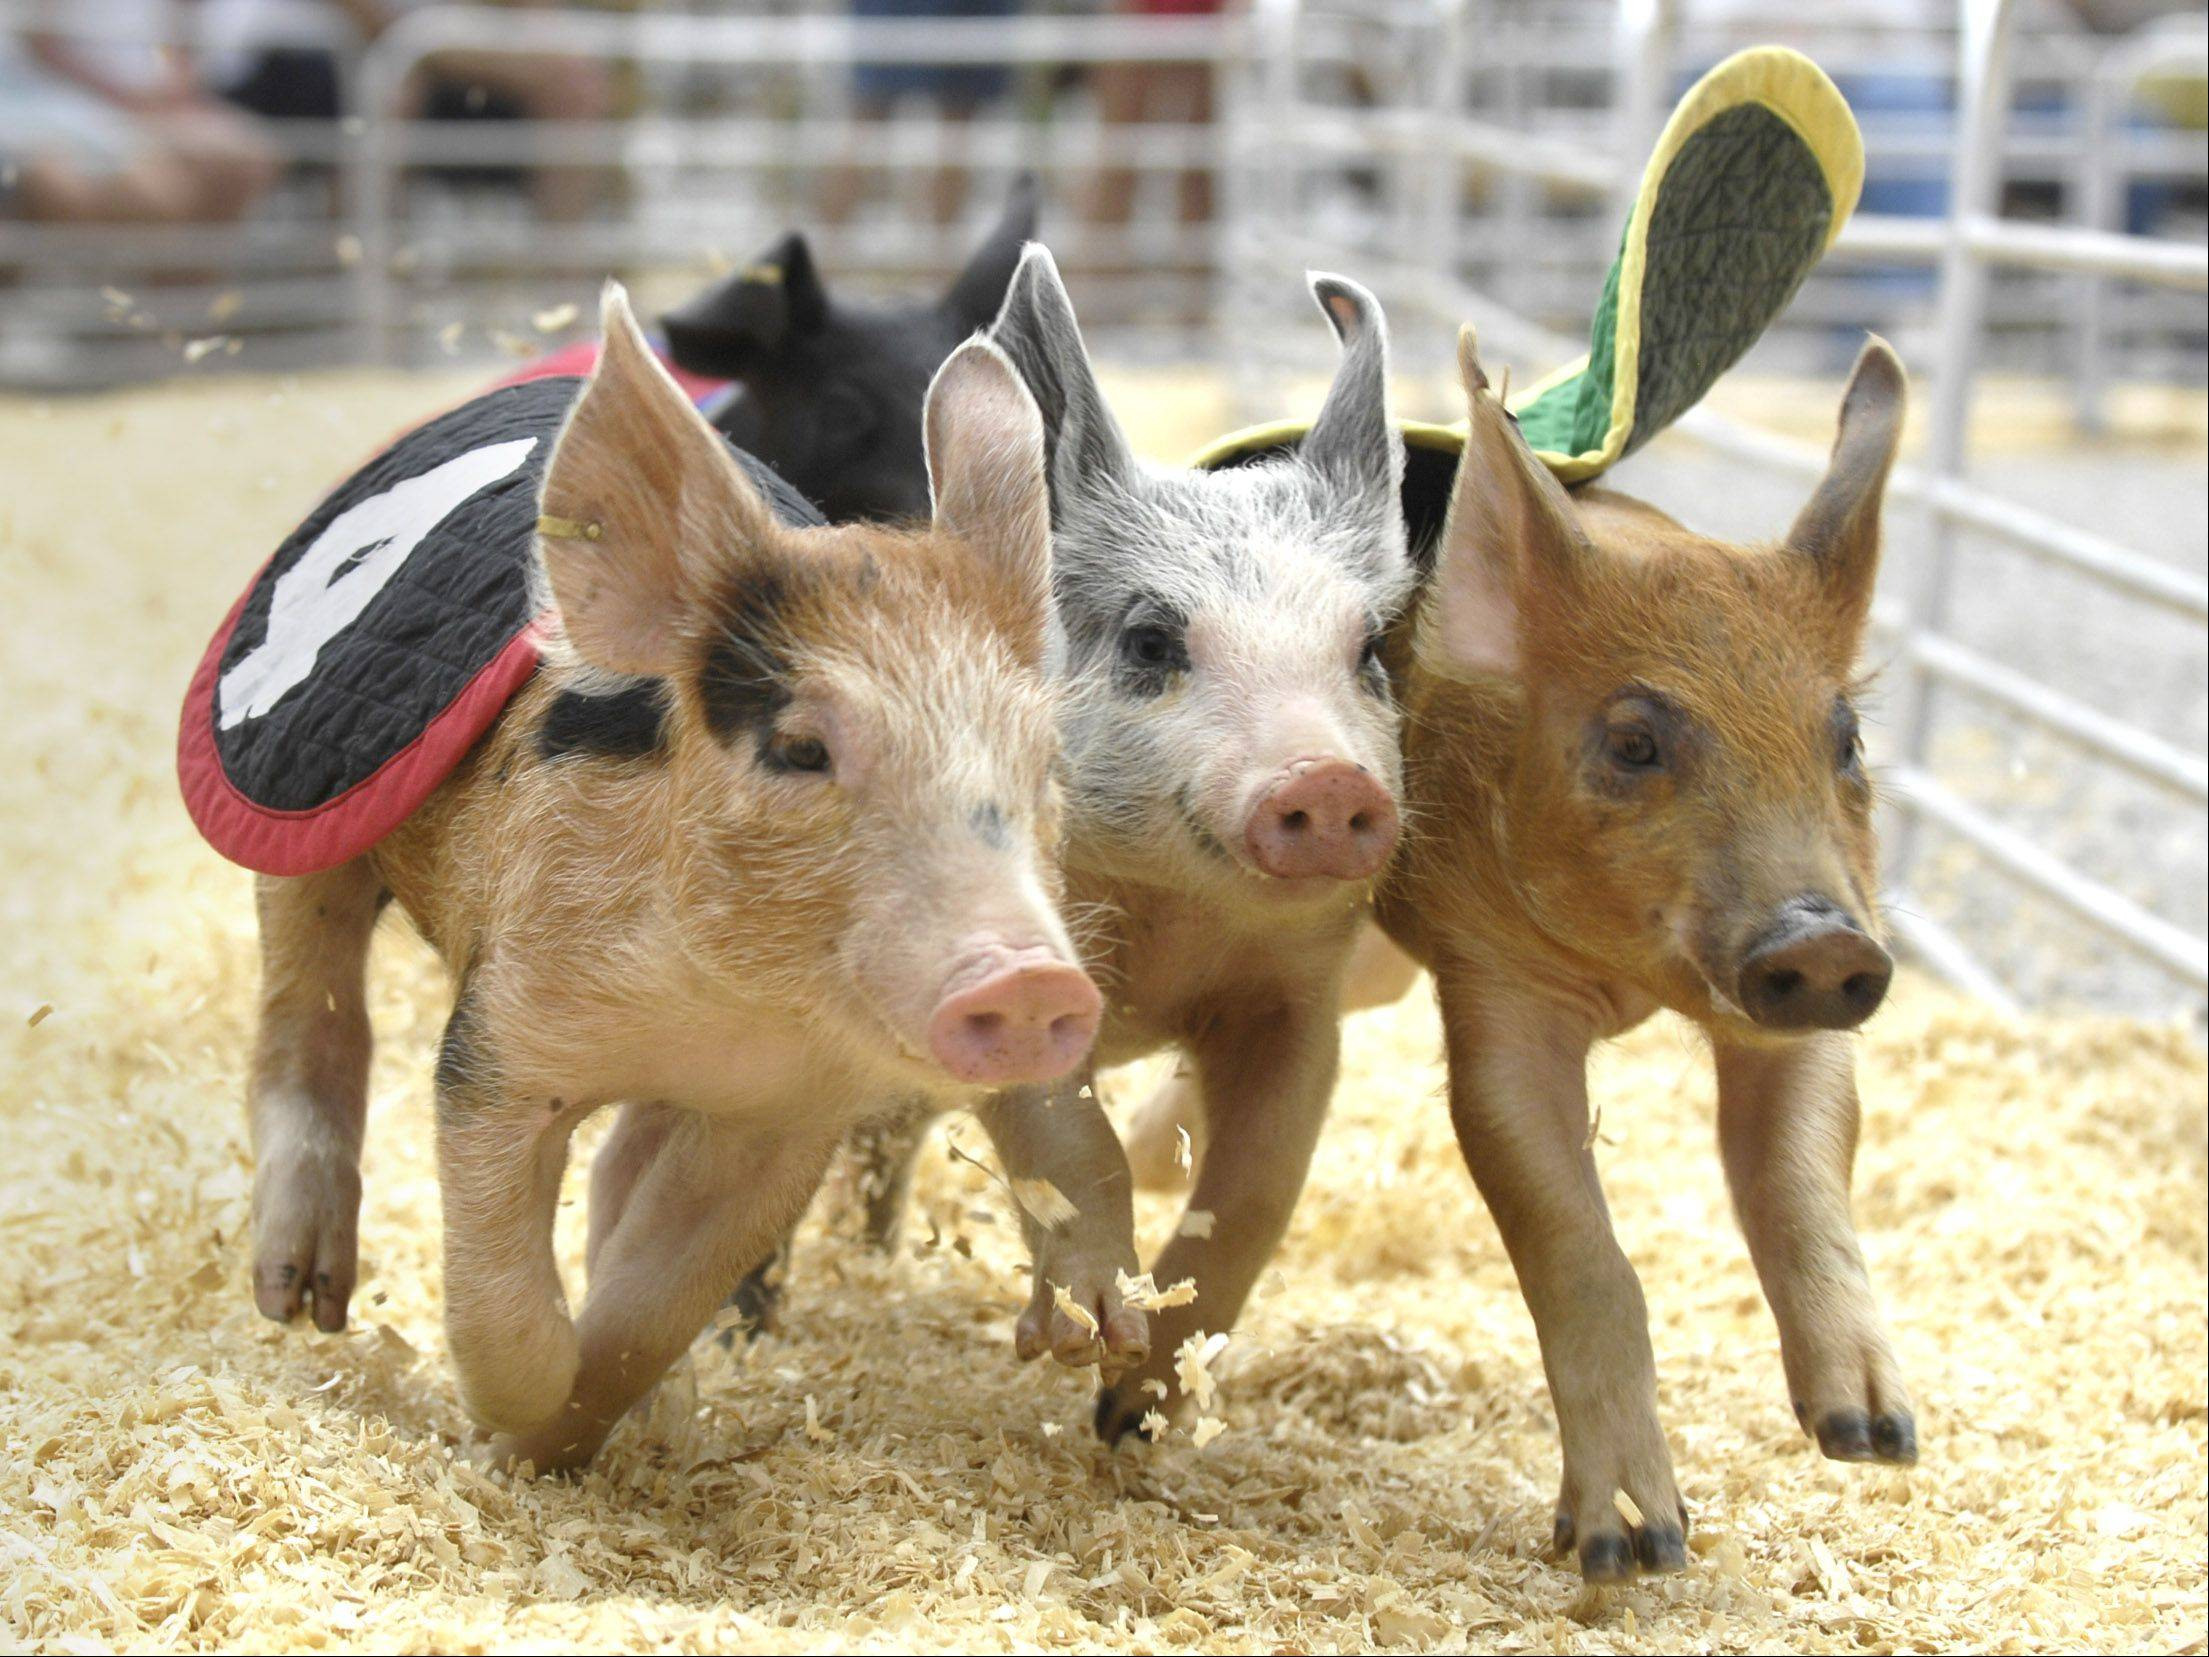 The Swifty Swine Productions Racing Pigs are set to return to the Kane County Fair in St. Charles.